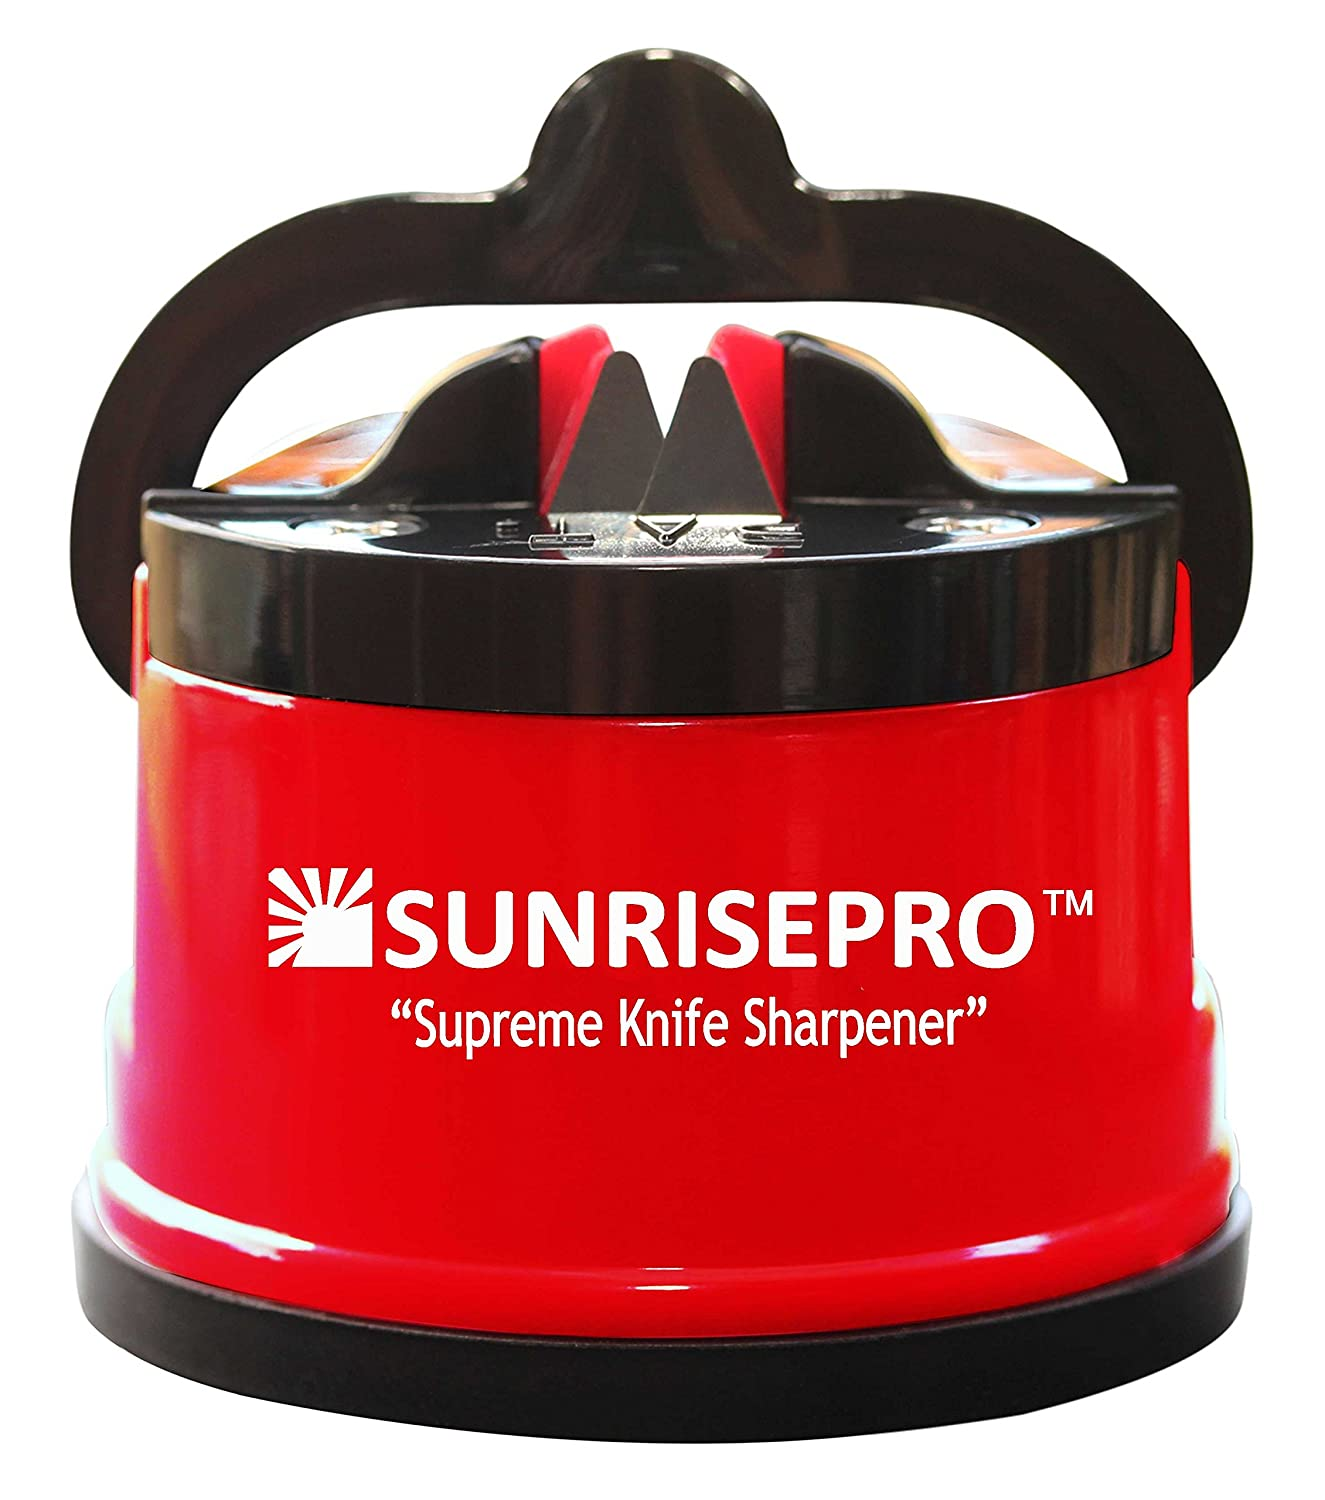 Sunrise Pro Knife Sharpener